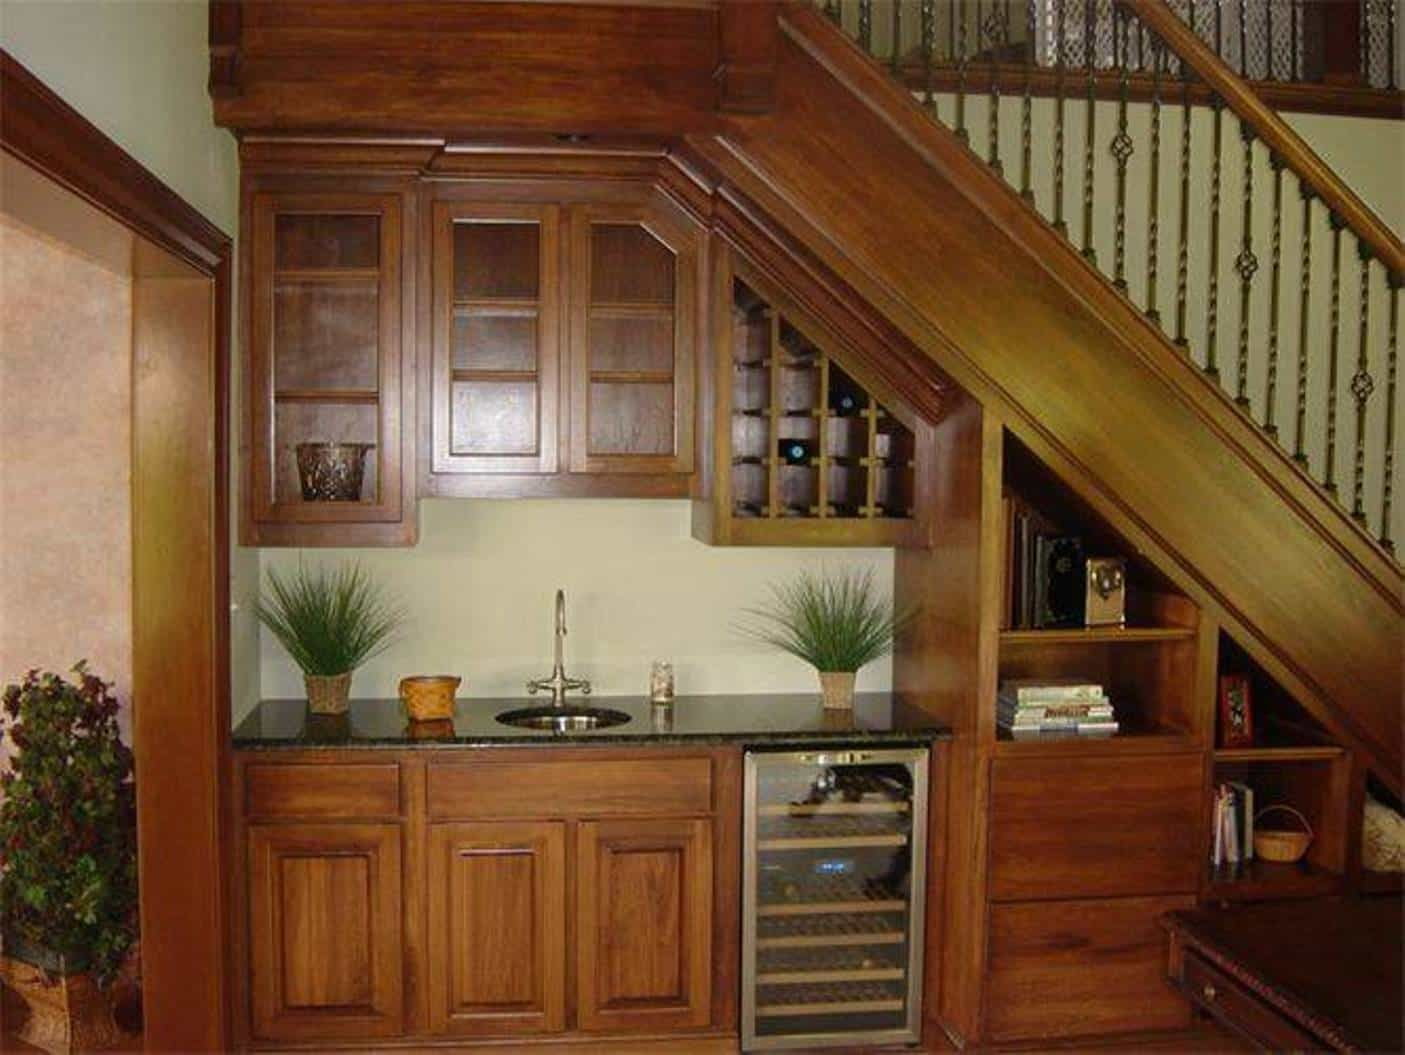 Home Design and Decor , Under Stair Design With Mini Bar : Stair ...